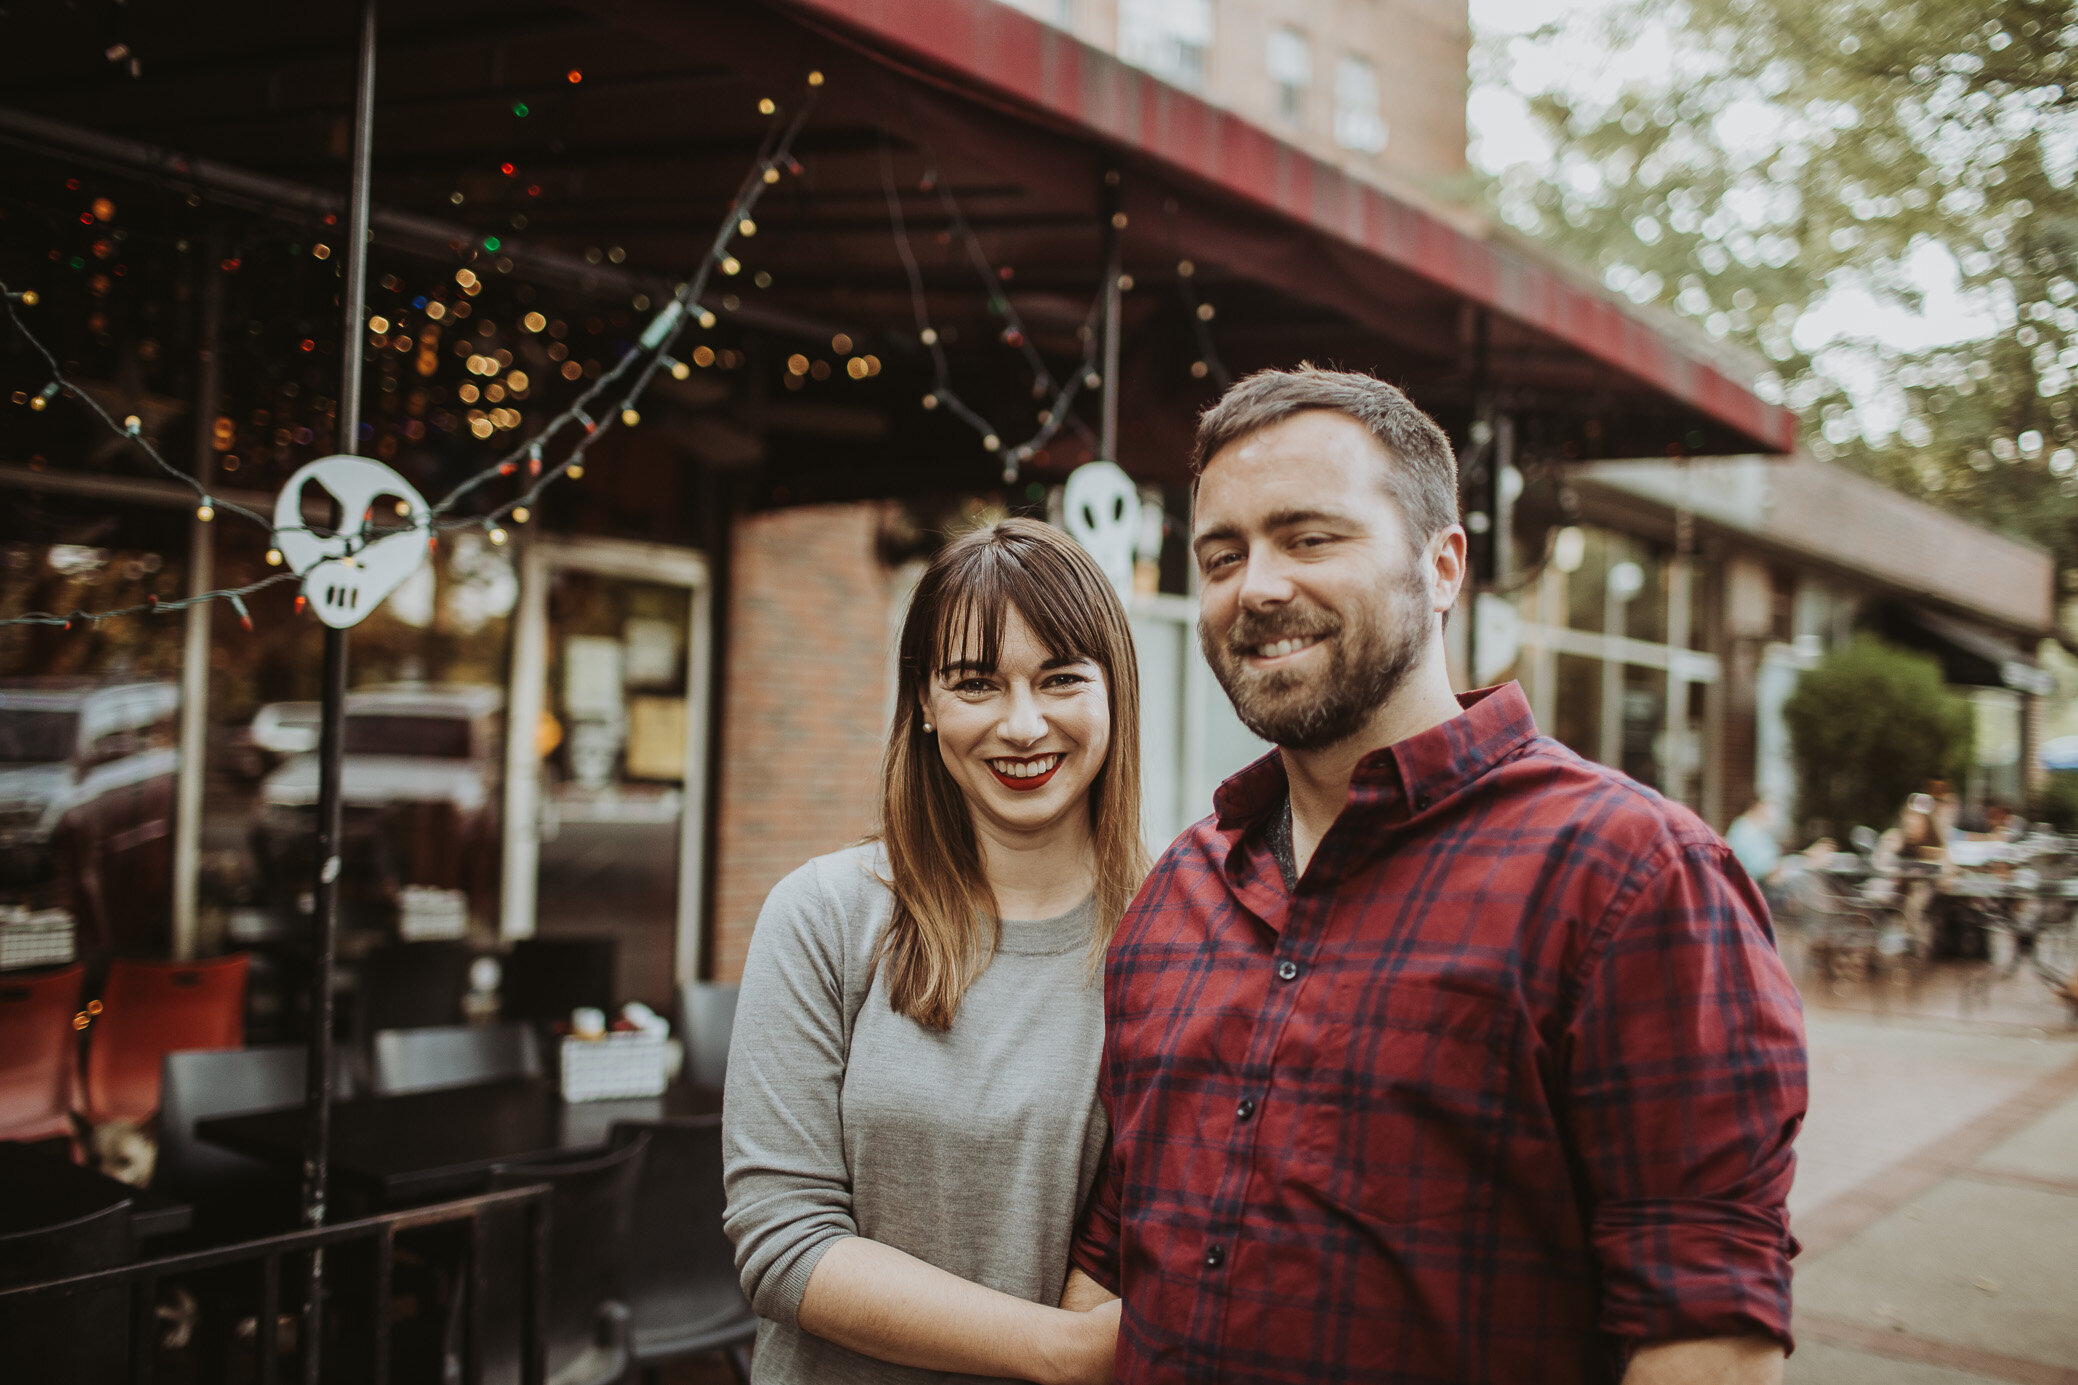 Birmingham Alabama Lifestyle Portraits in the Highland Park neighborhood by David A. Smith of DSmithImages Wedding Photography, Portraits, and Events